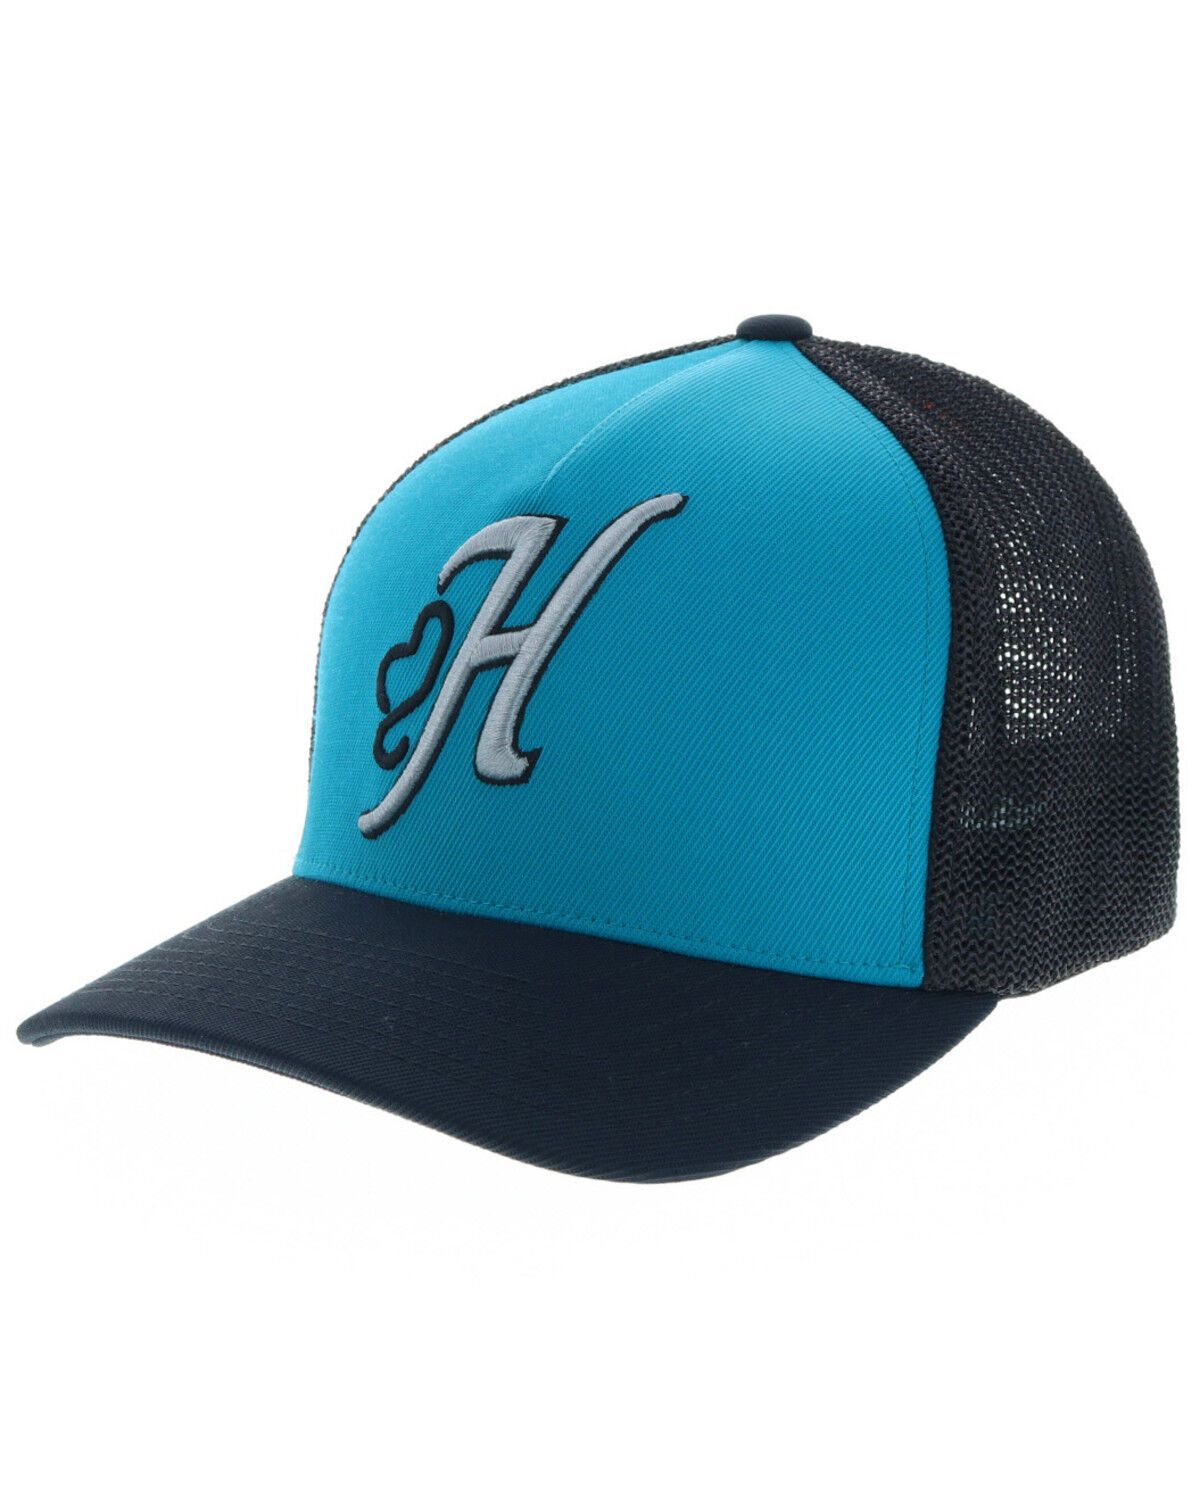 reputable site 1dd6f 83dce ... low price discount hooey mens skipper flexfit cap aqua hi res 03349  3935a 2f5dc 06e6a